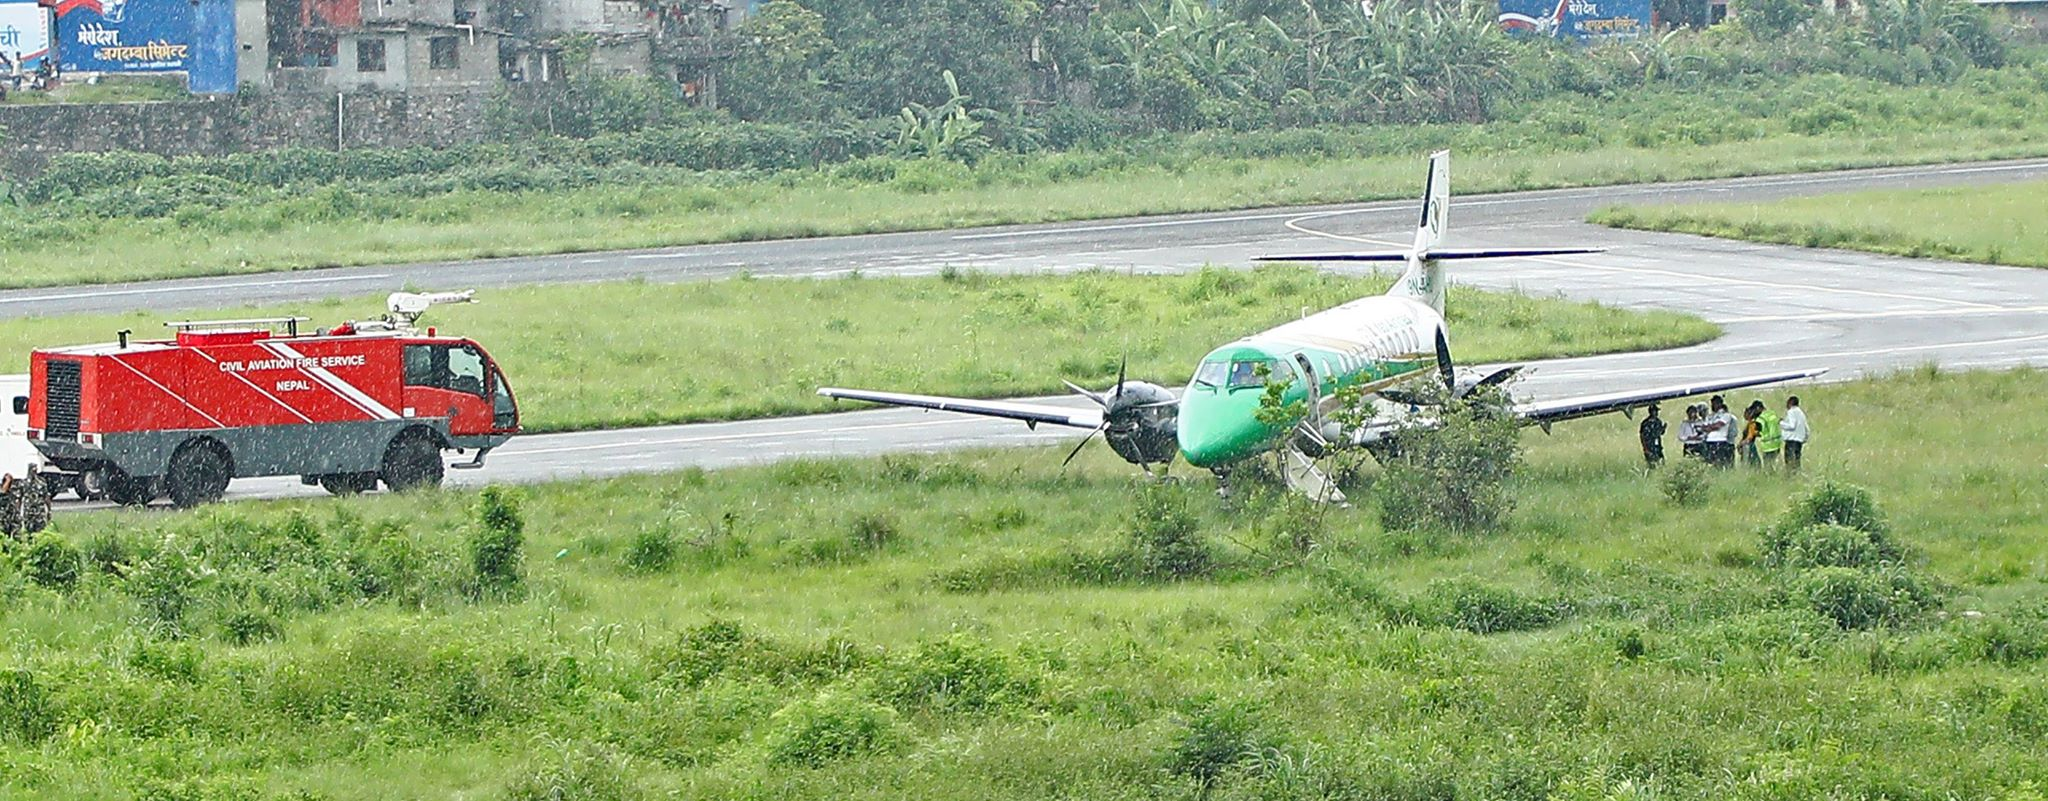 A plane of Yeti airlines narrowly escaped an accident at Pokhara Airport